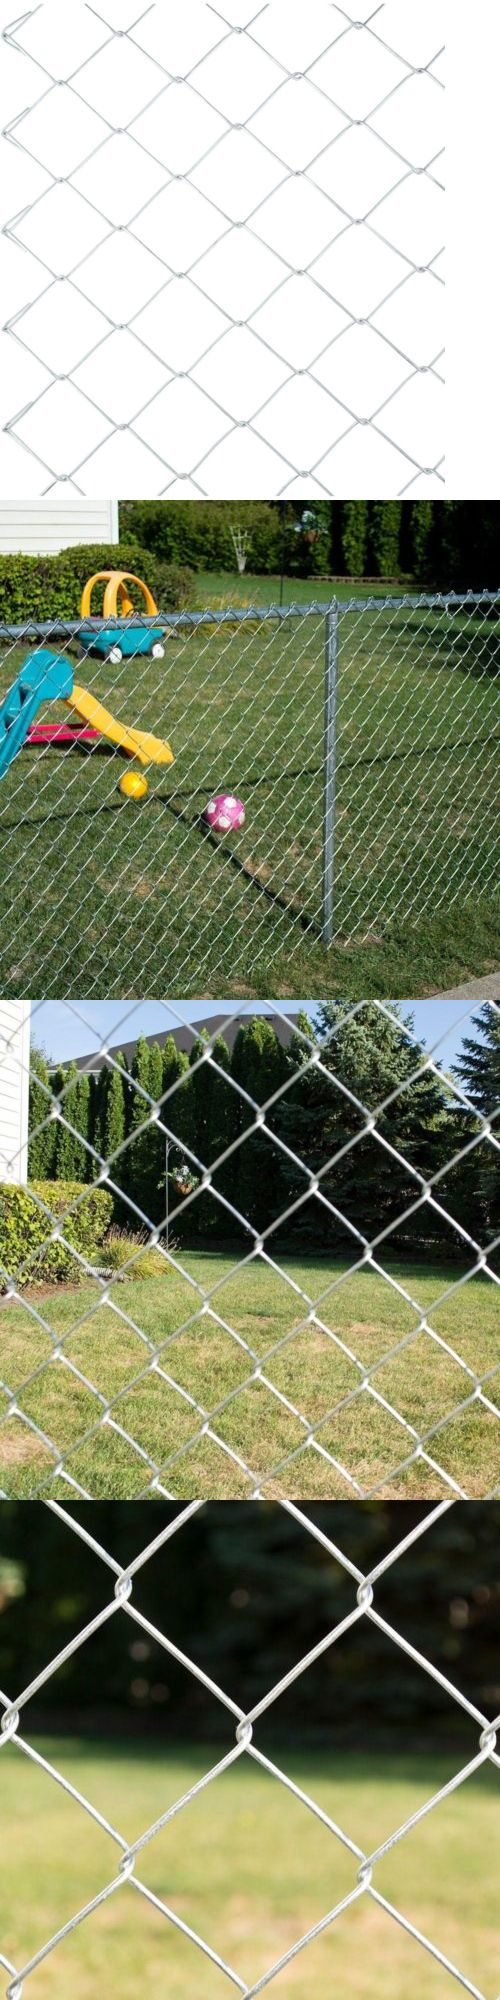 Privacy screen for chain link fence ebay - Chain Link Fencing 180984 Yardgard 5 Ft X 50 Ft 11 5 Gauge